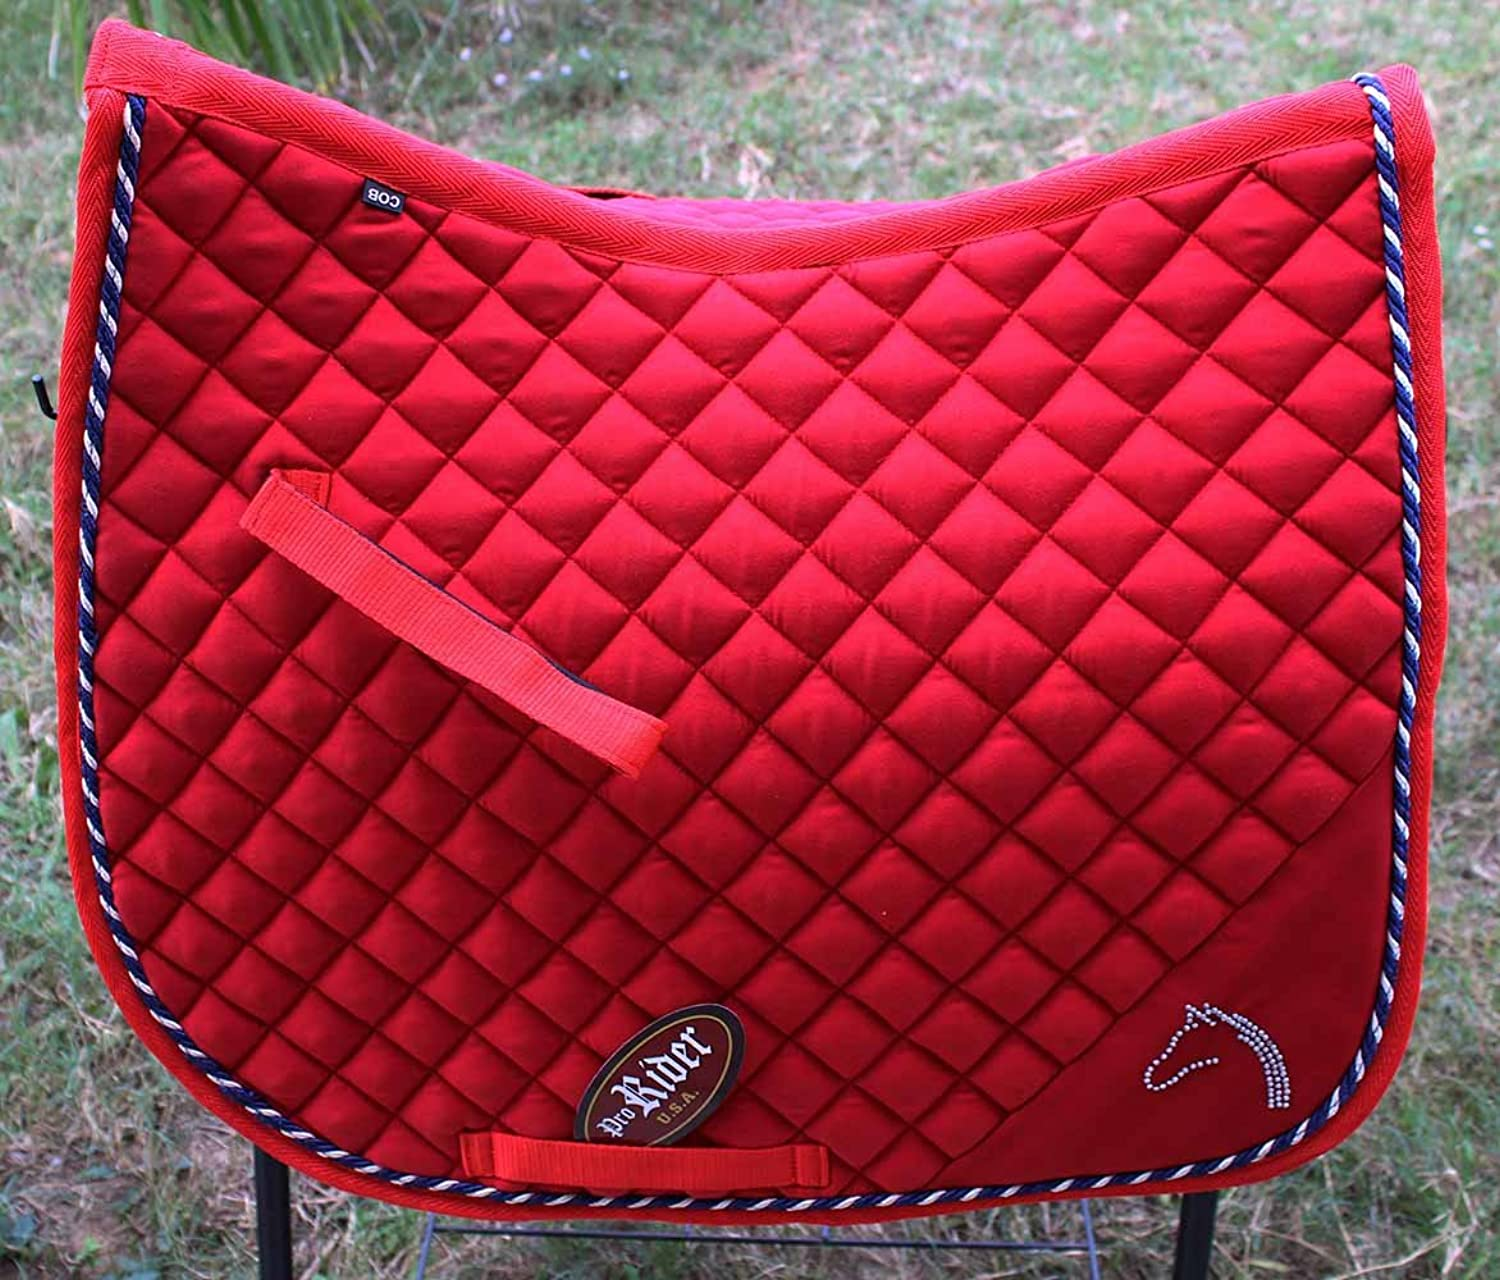 St. Charles Horse Quilted English Saddle PAD Tack Trail Riding Red 7266